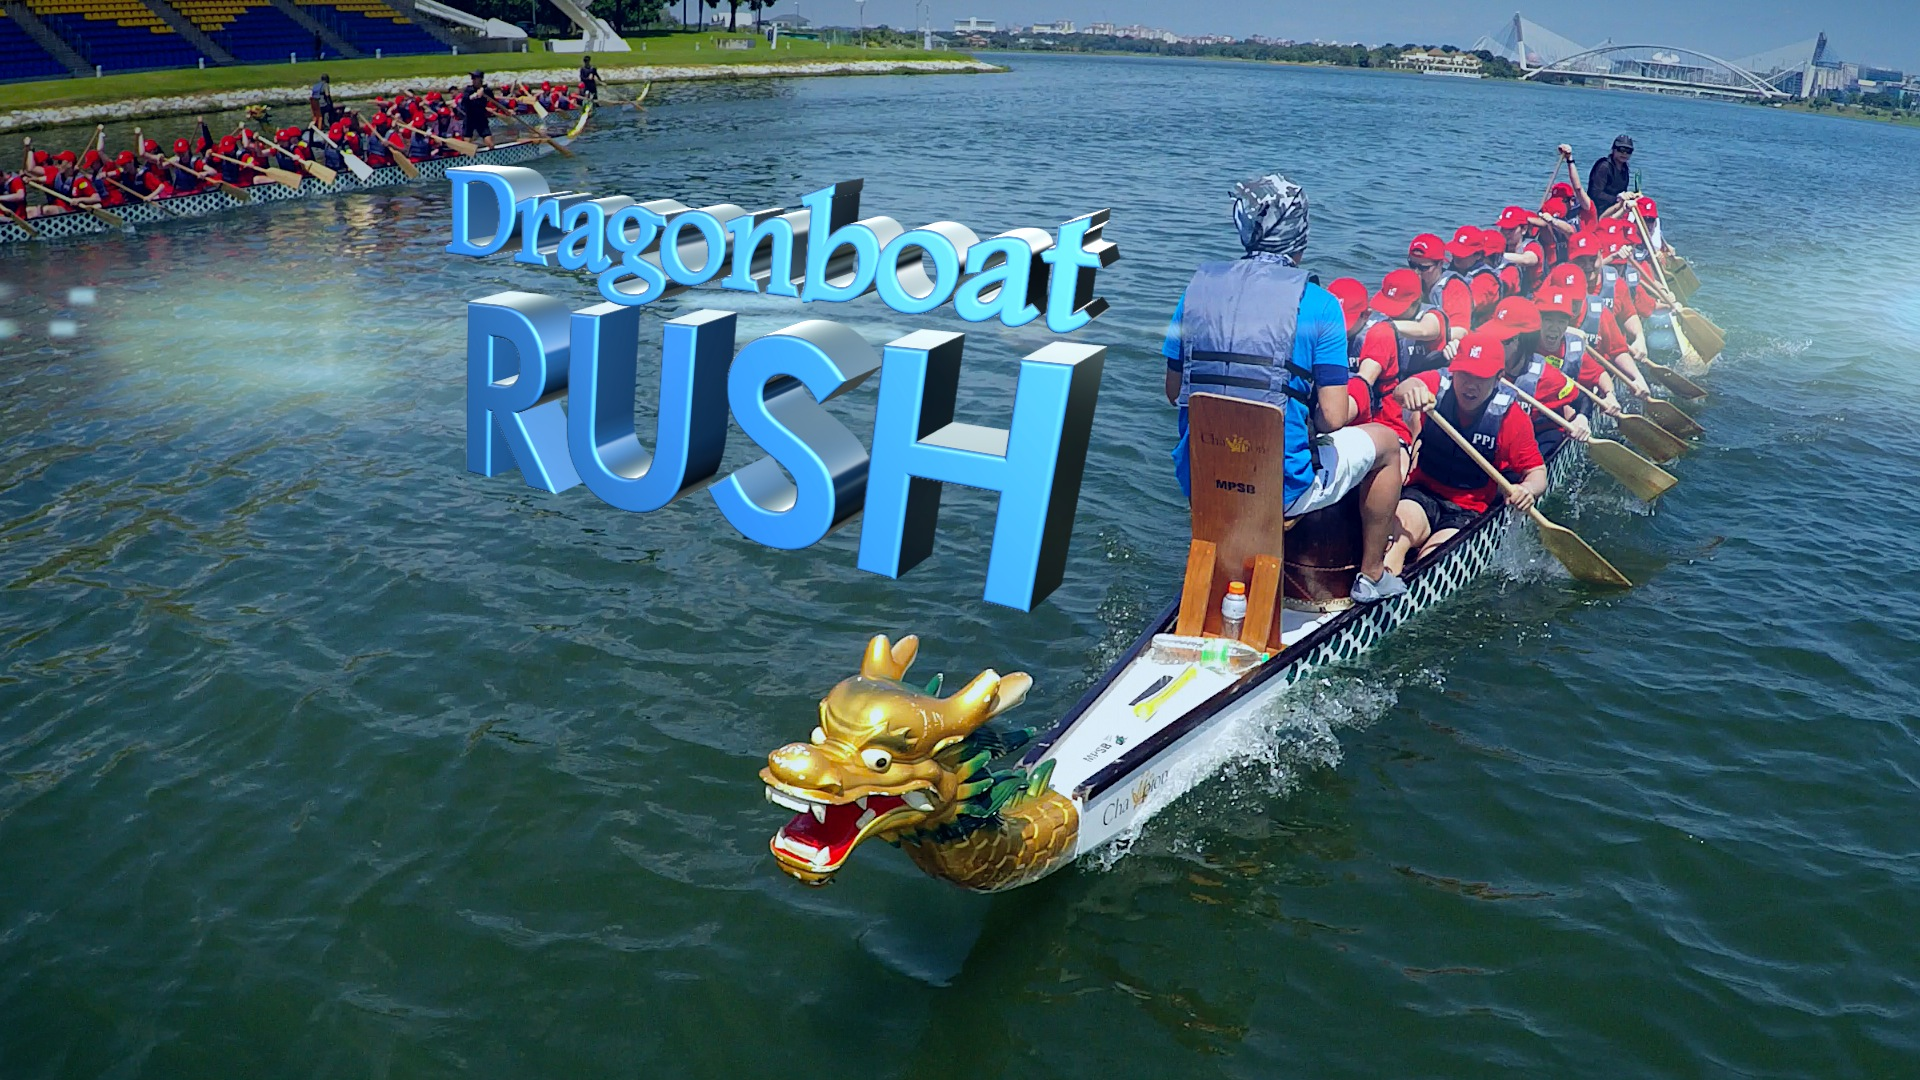 Aerial videos Malaysia- Dragonboat Rush by WolFang Digital